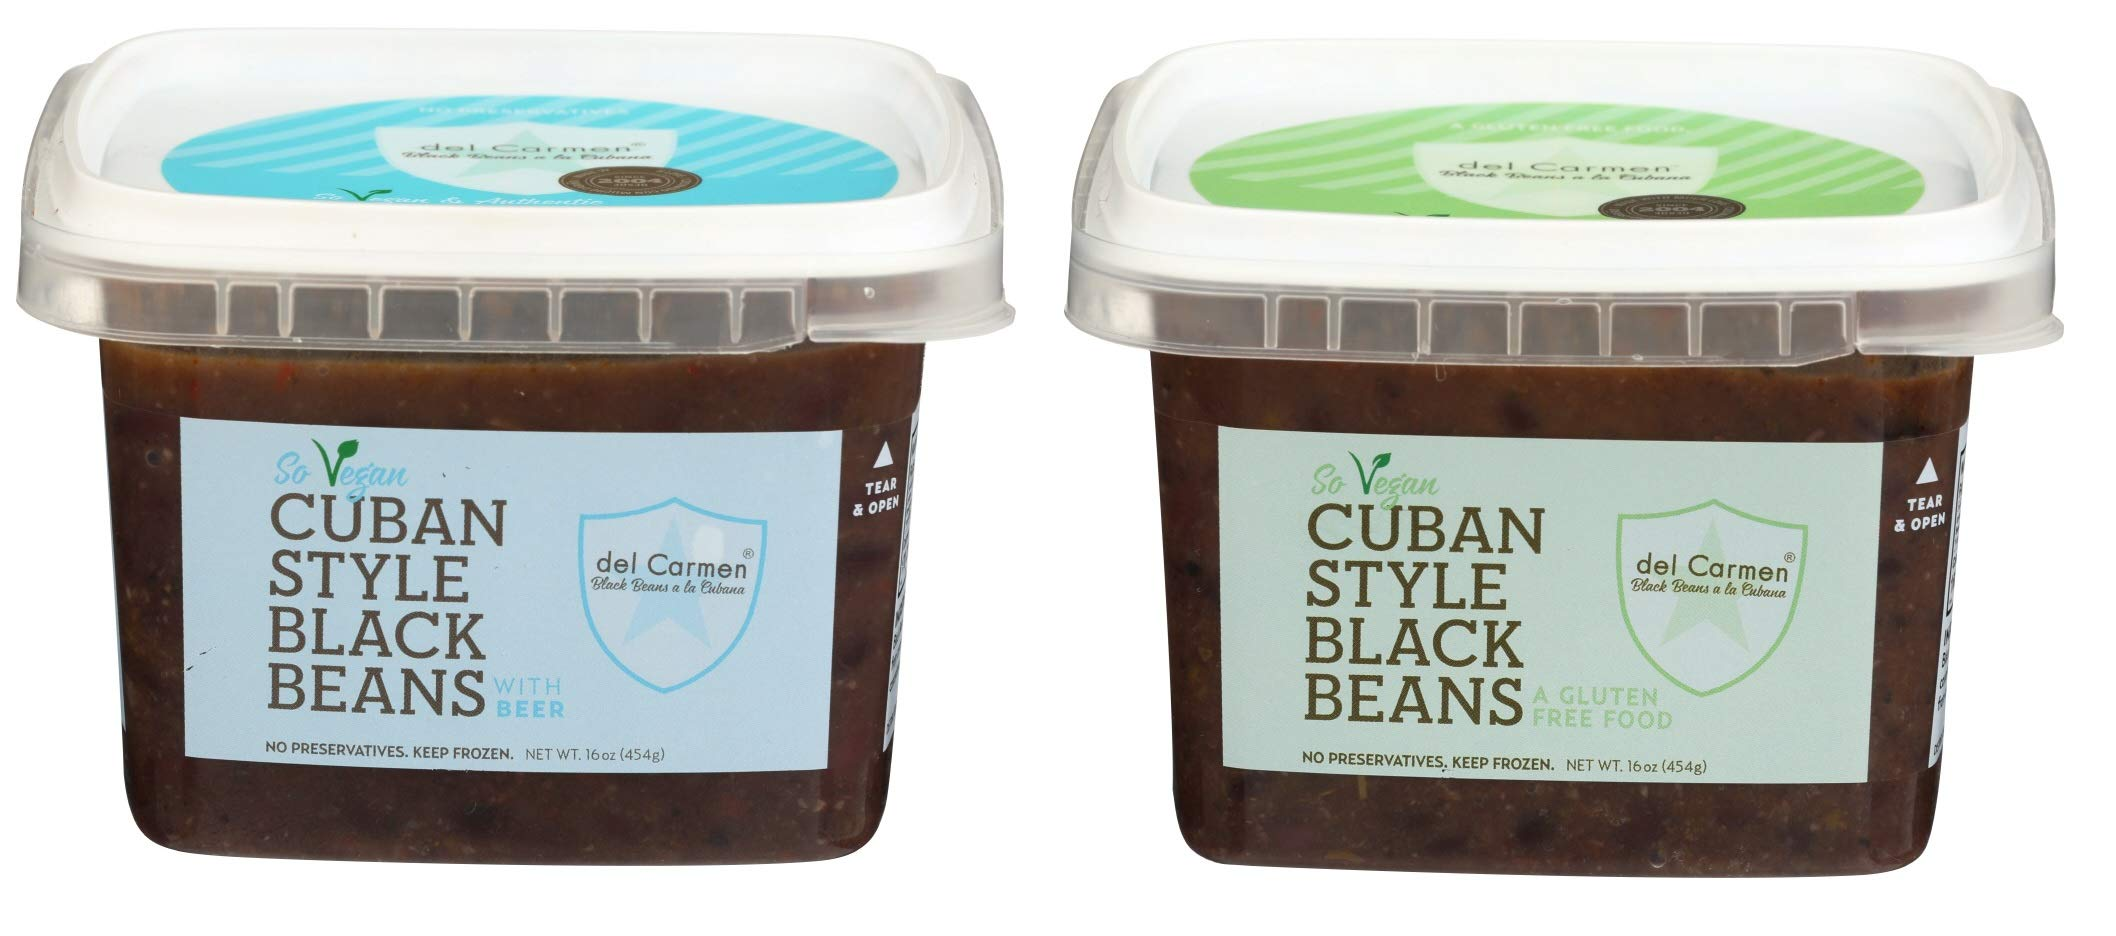 del Carmen Cuban Style Black Beans Variety Pack, 16 oz. 6 of each: Cuban Style with Beer & Gluten Free Cuban Style (Pack of 12)